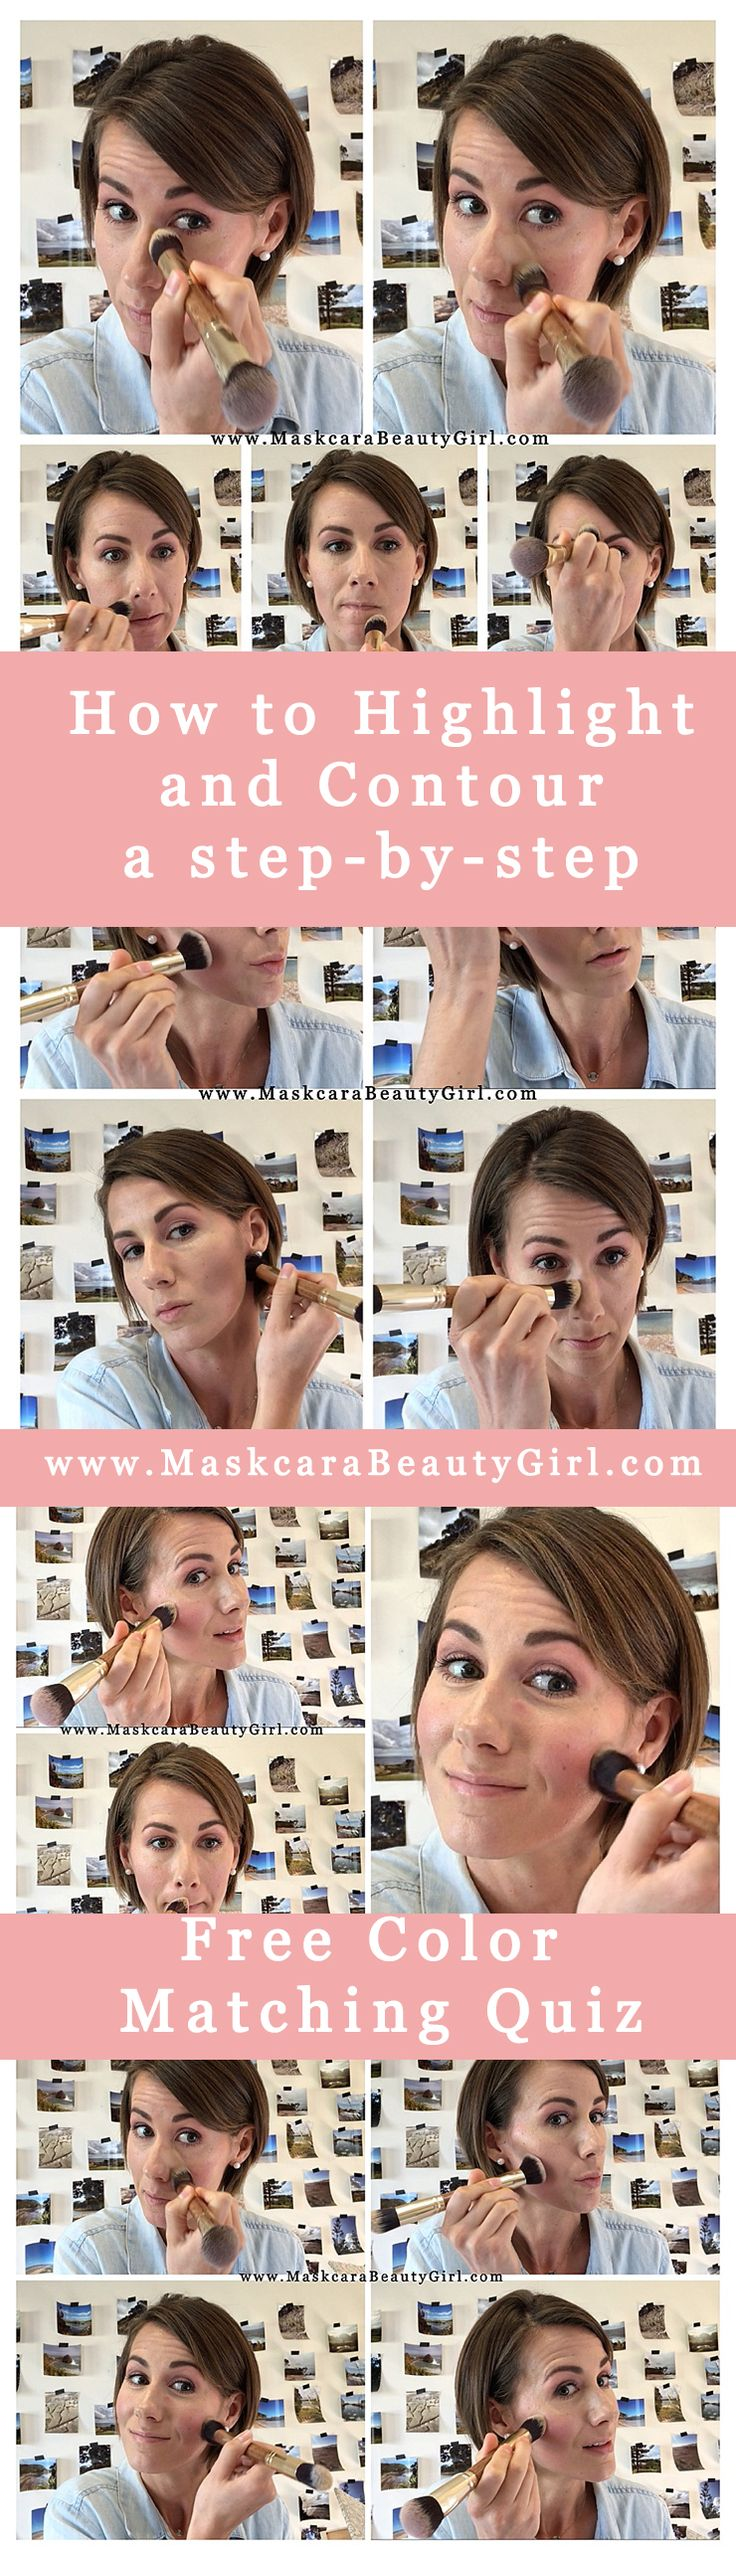 how to highlight and contour Maskcara makeup how to hac a step by step guide to …